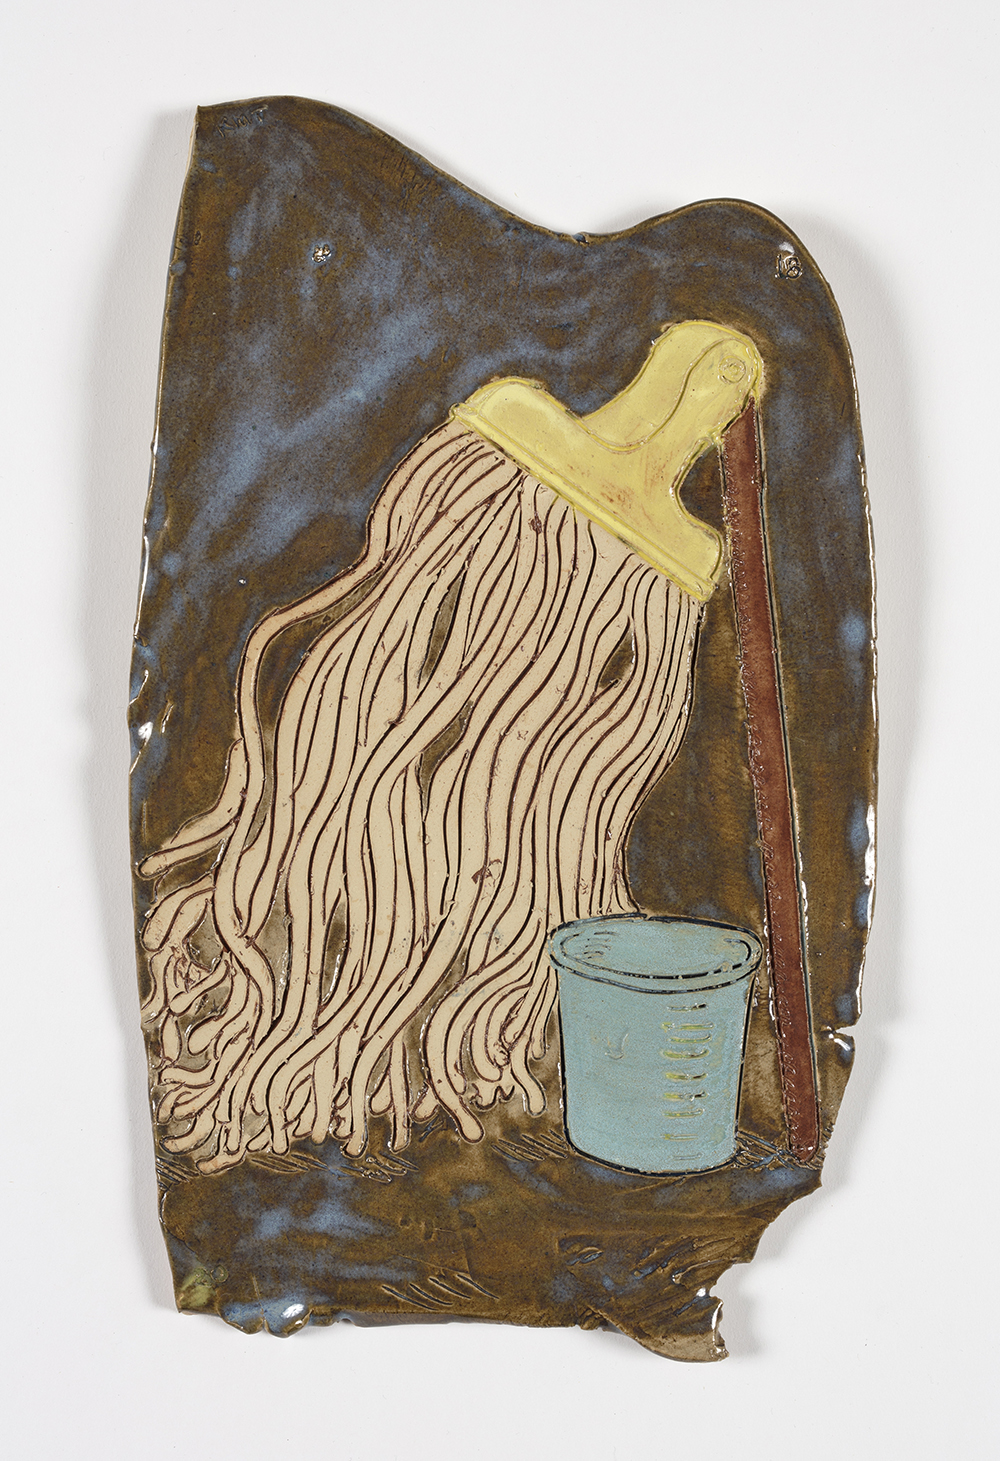 Kevin McNamee-Tweed.<em> Mop</em>, 2018. Glazed ceramic, 12 1/2 x 7 1/4 inches (31.8 x 18.4 cm)